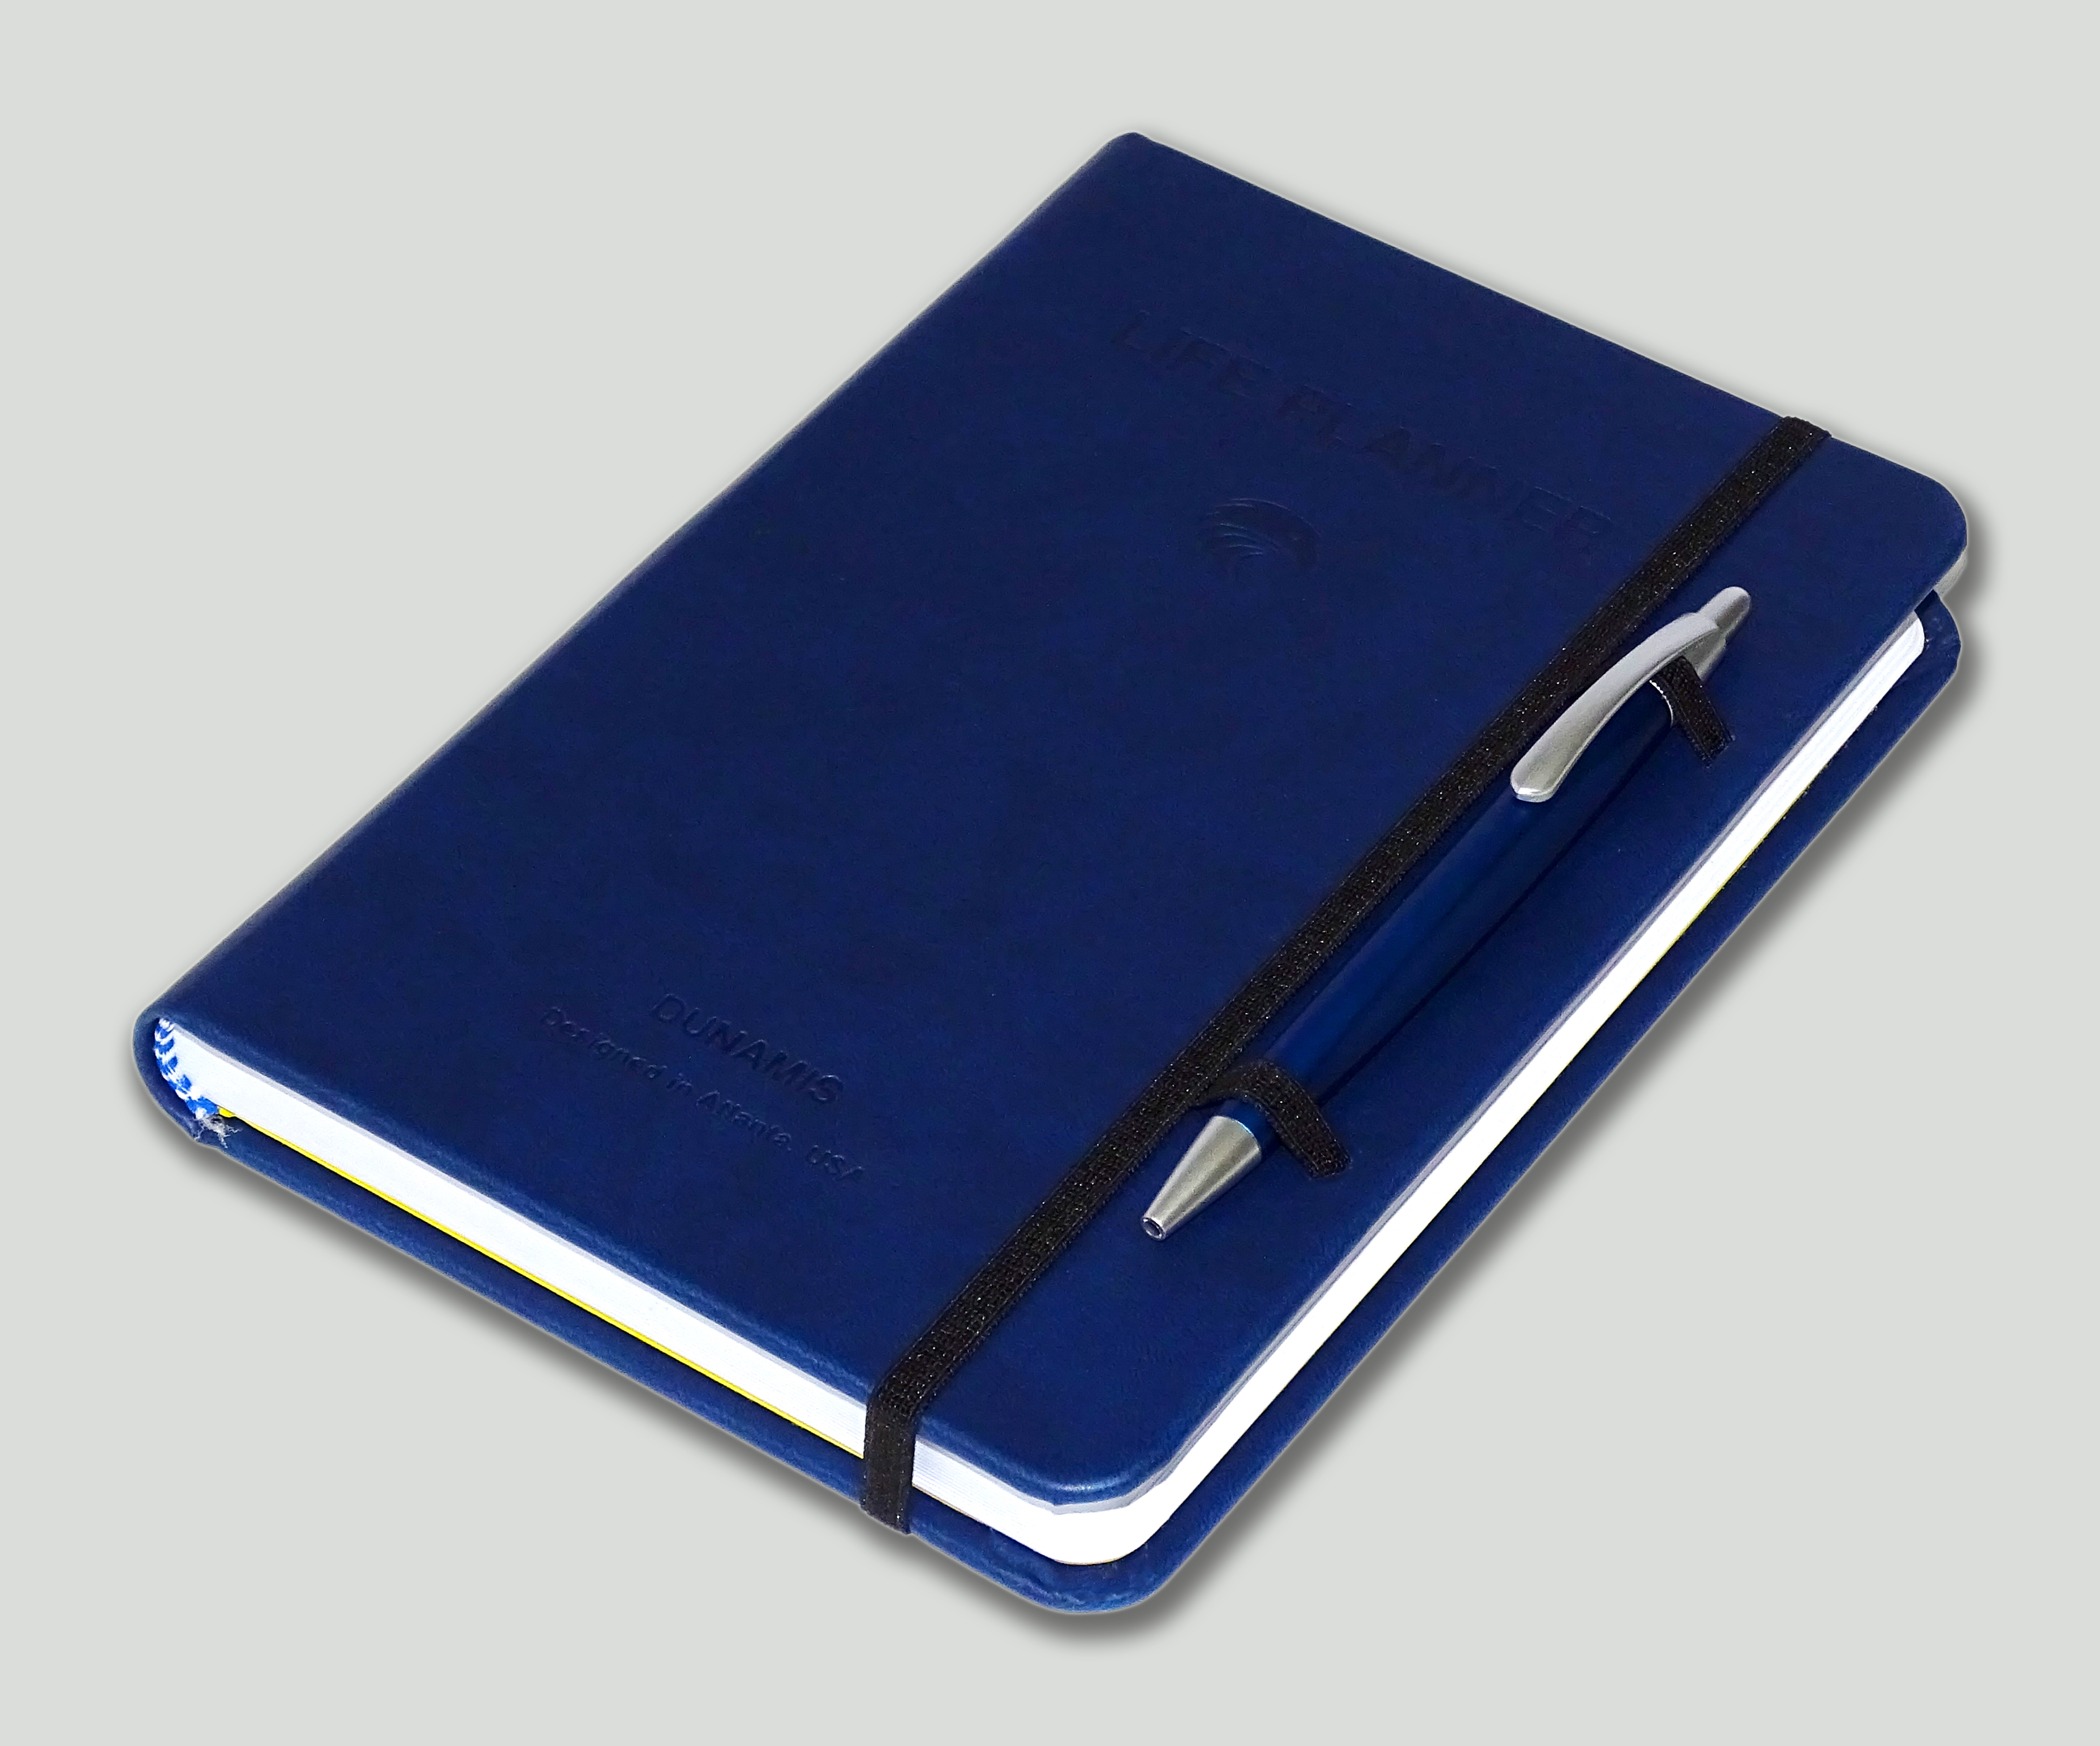 Best Selling Phone 2021 Customized/ A4   A5/ Best Selling/ 2020 2021/ Journal/ Note Book